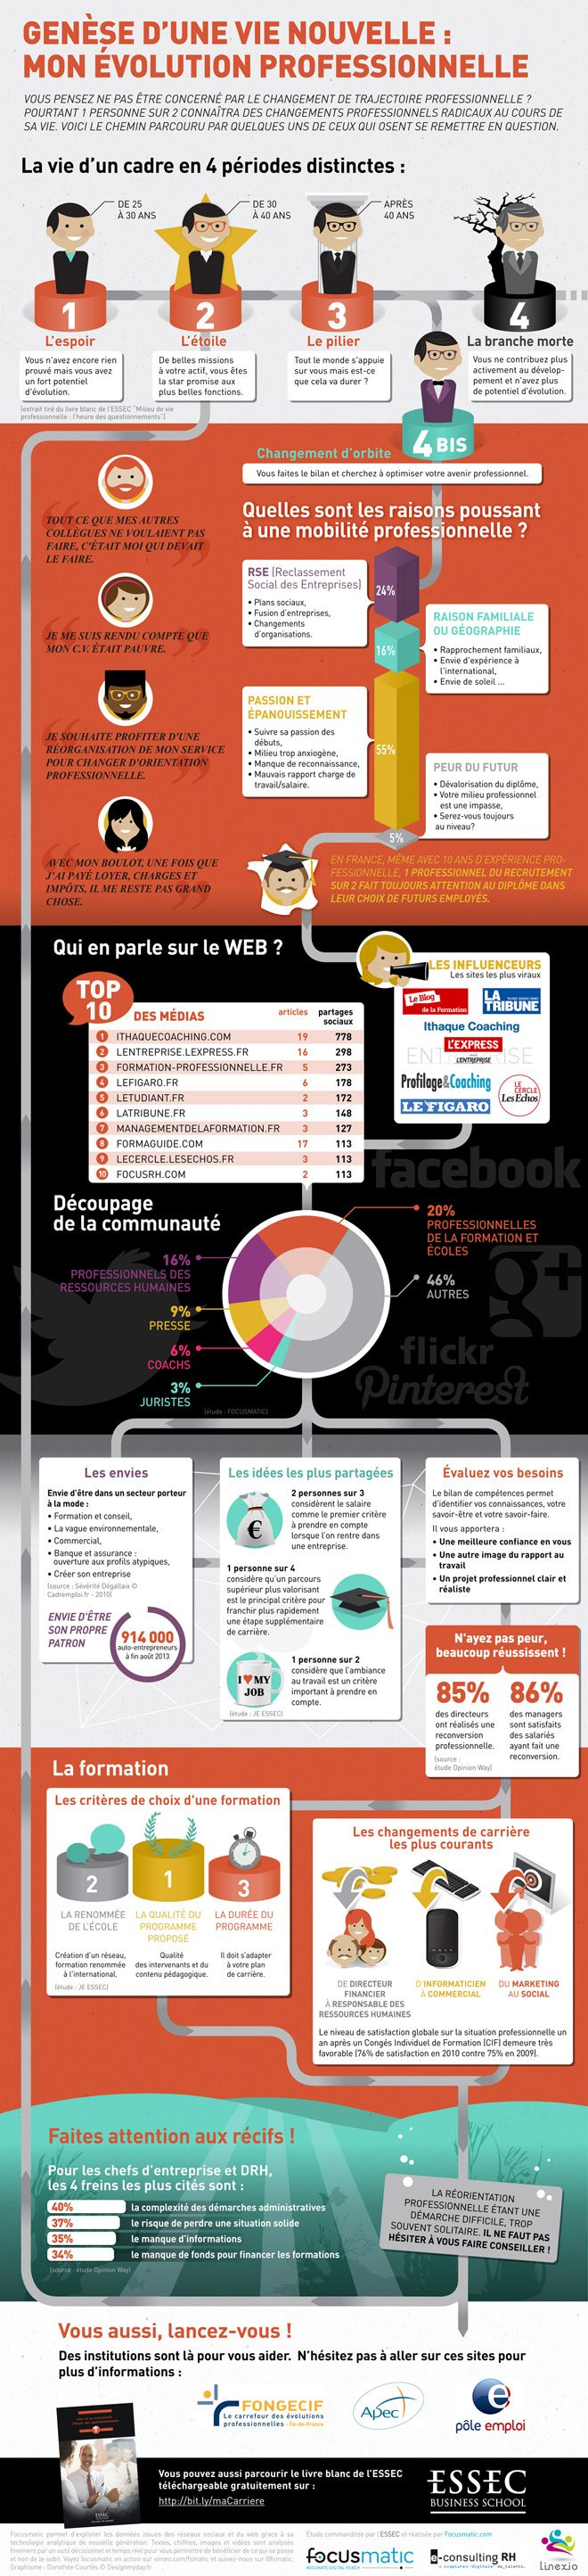 [#infographie] Genèse d'une nouvelle vie : Reconversion Professionnelle by @ESSEC Business School w/ @SylvainePascual  #RH #reconversion